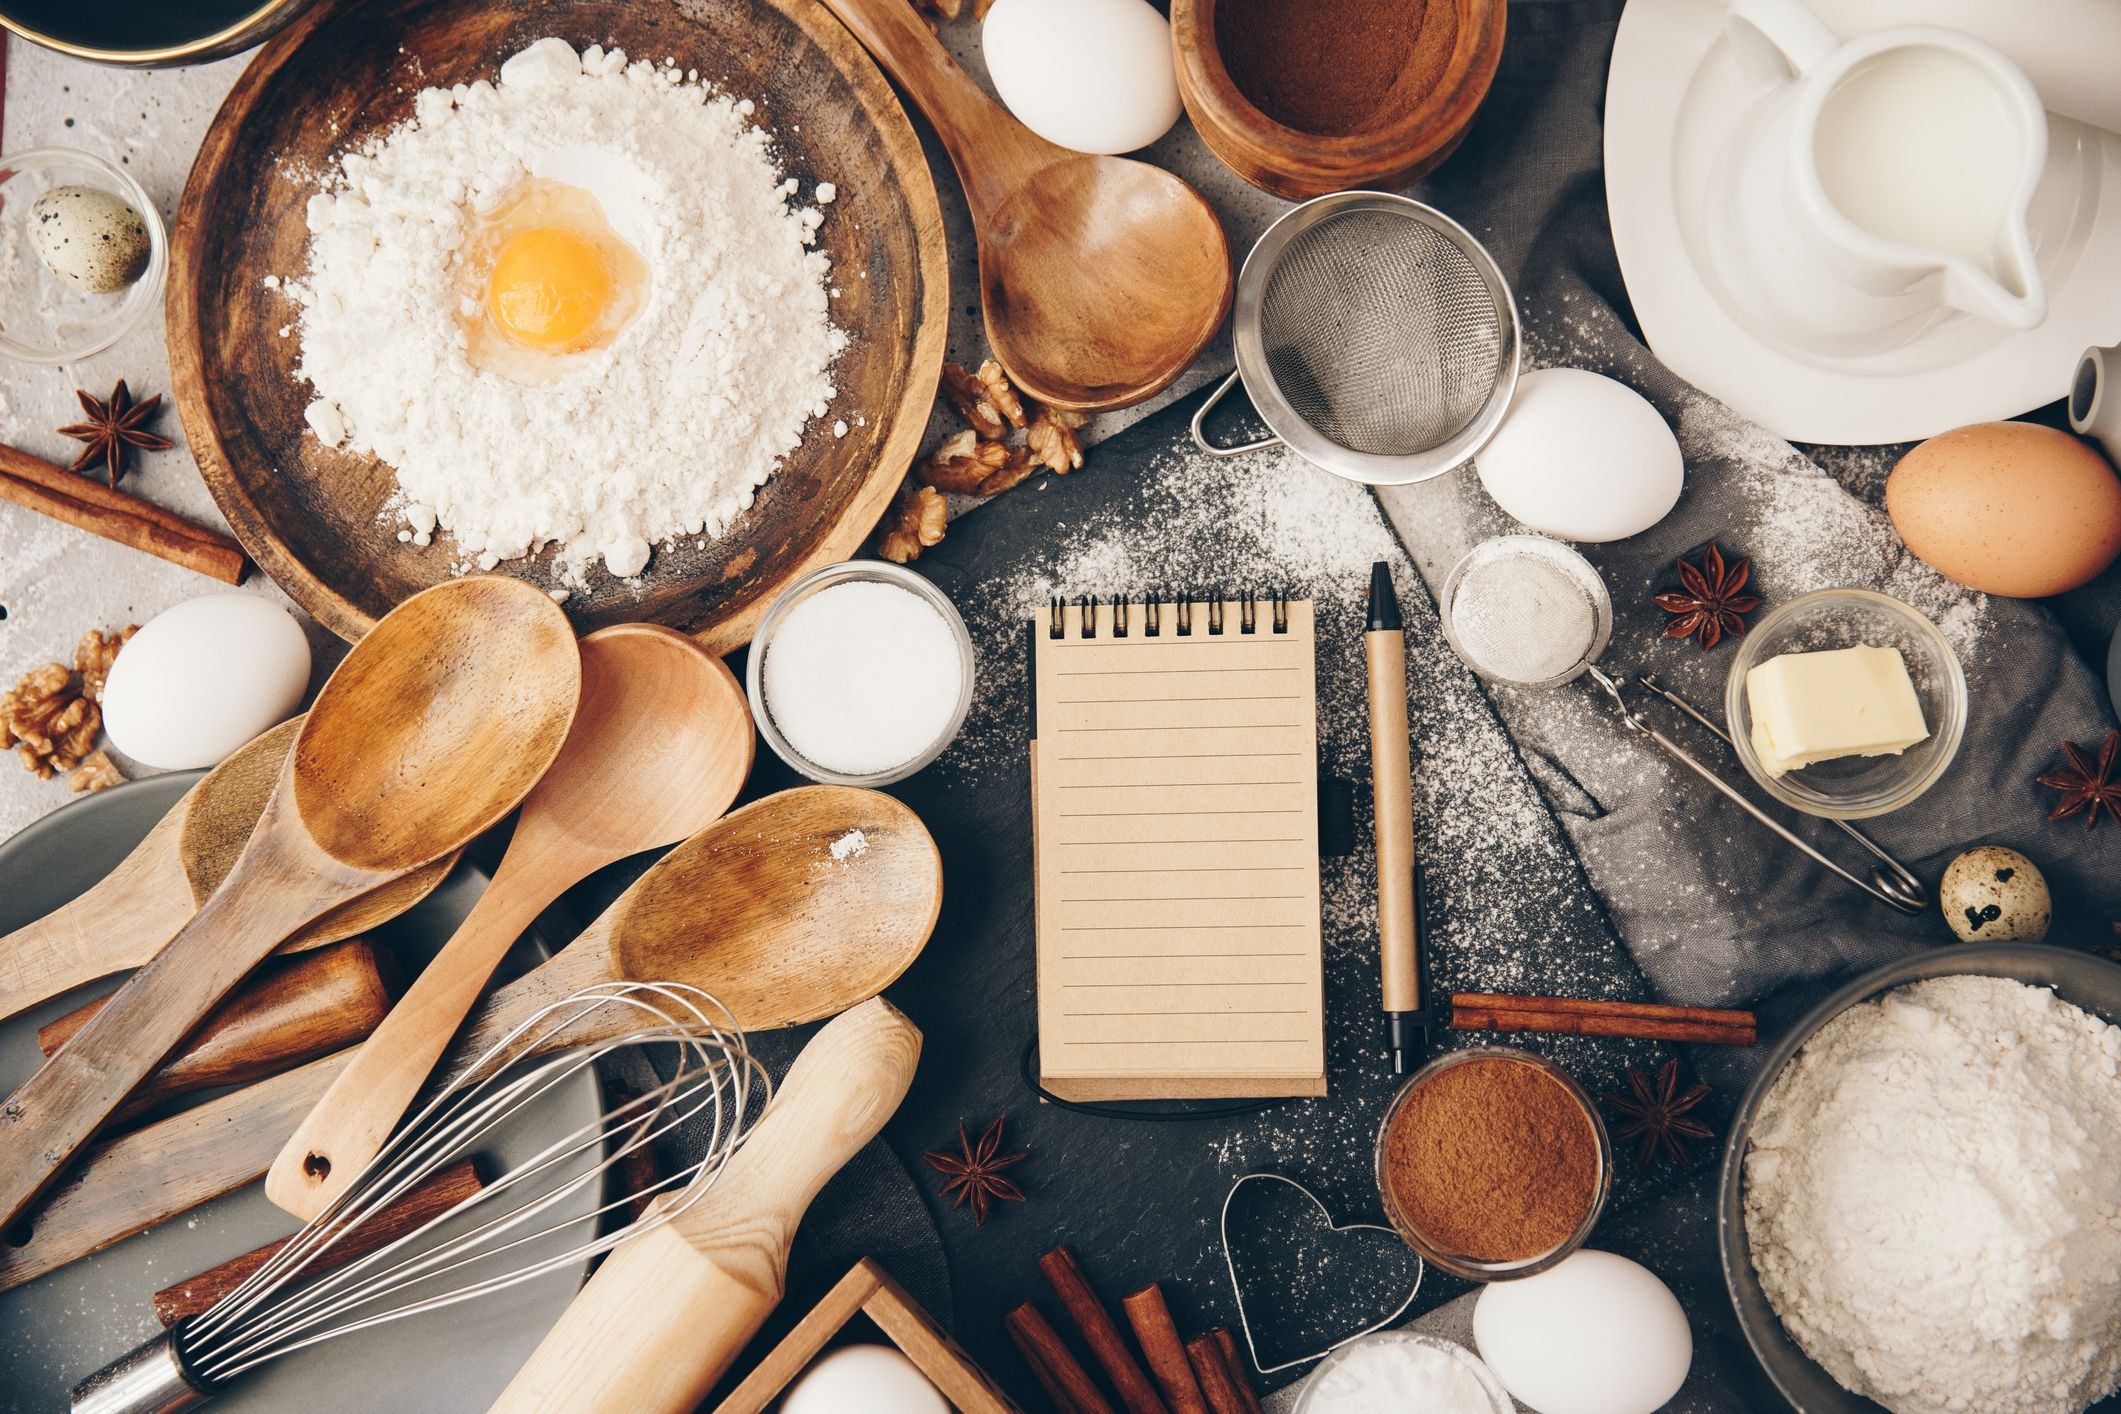 overhead-view-of-baking-ingredients-and-